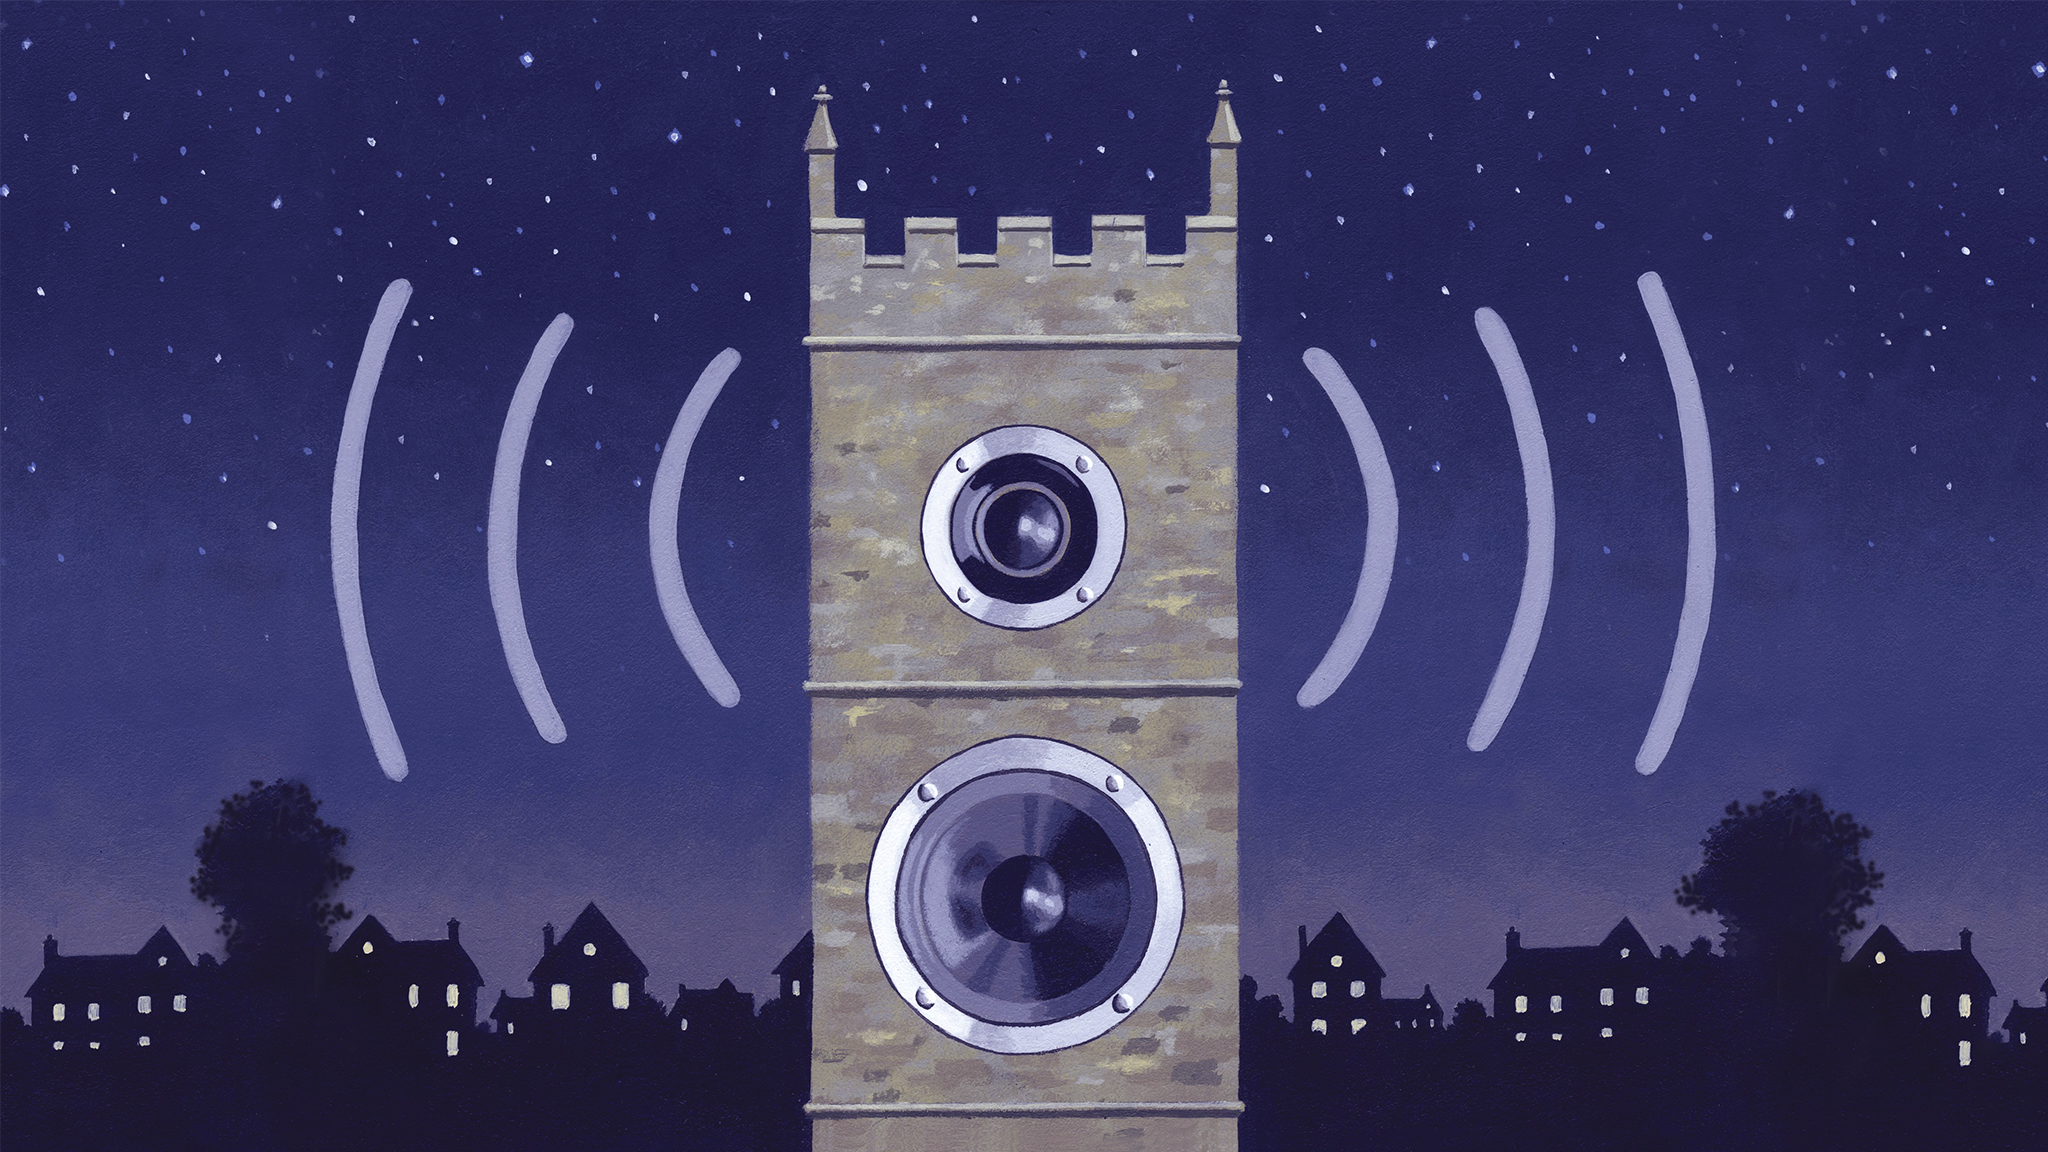 Property law: how to silence noisy bell-ringers | Financial